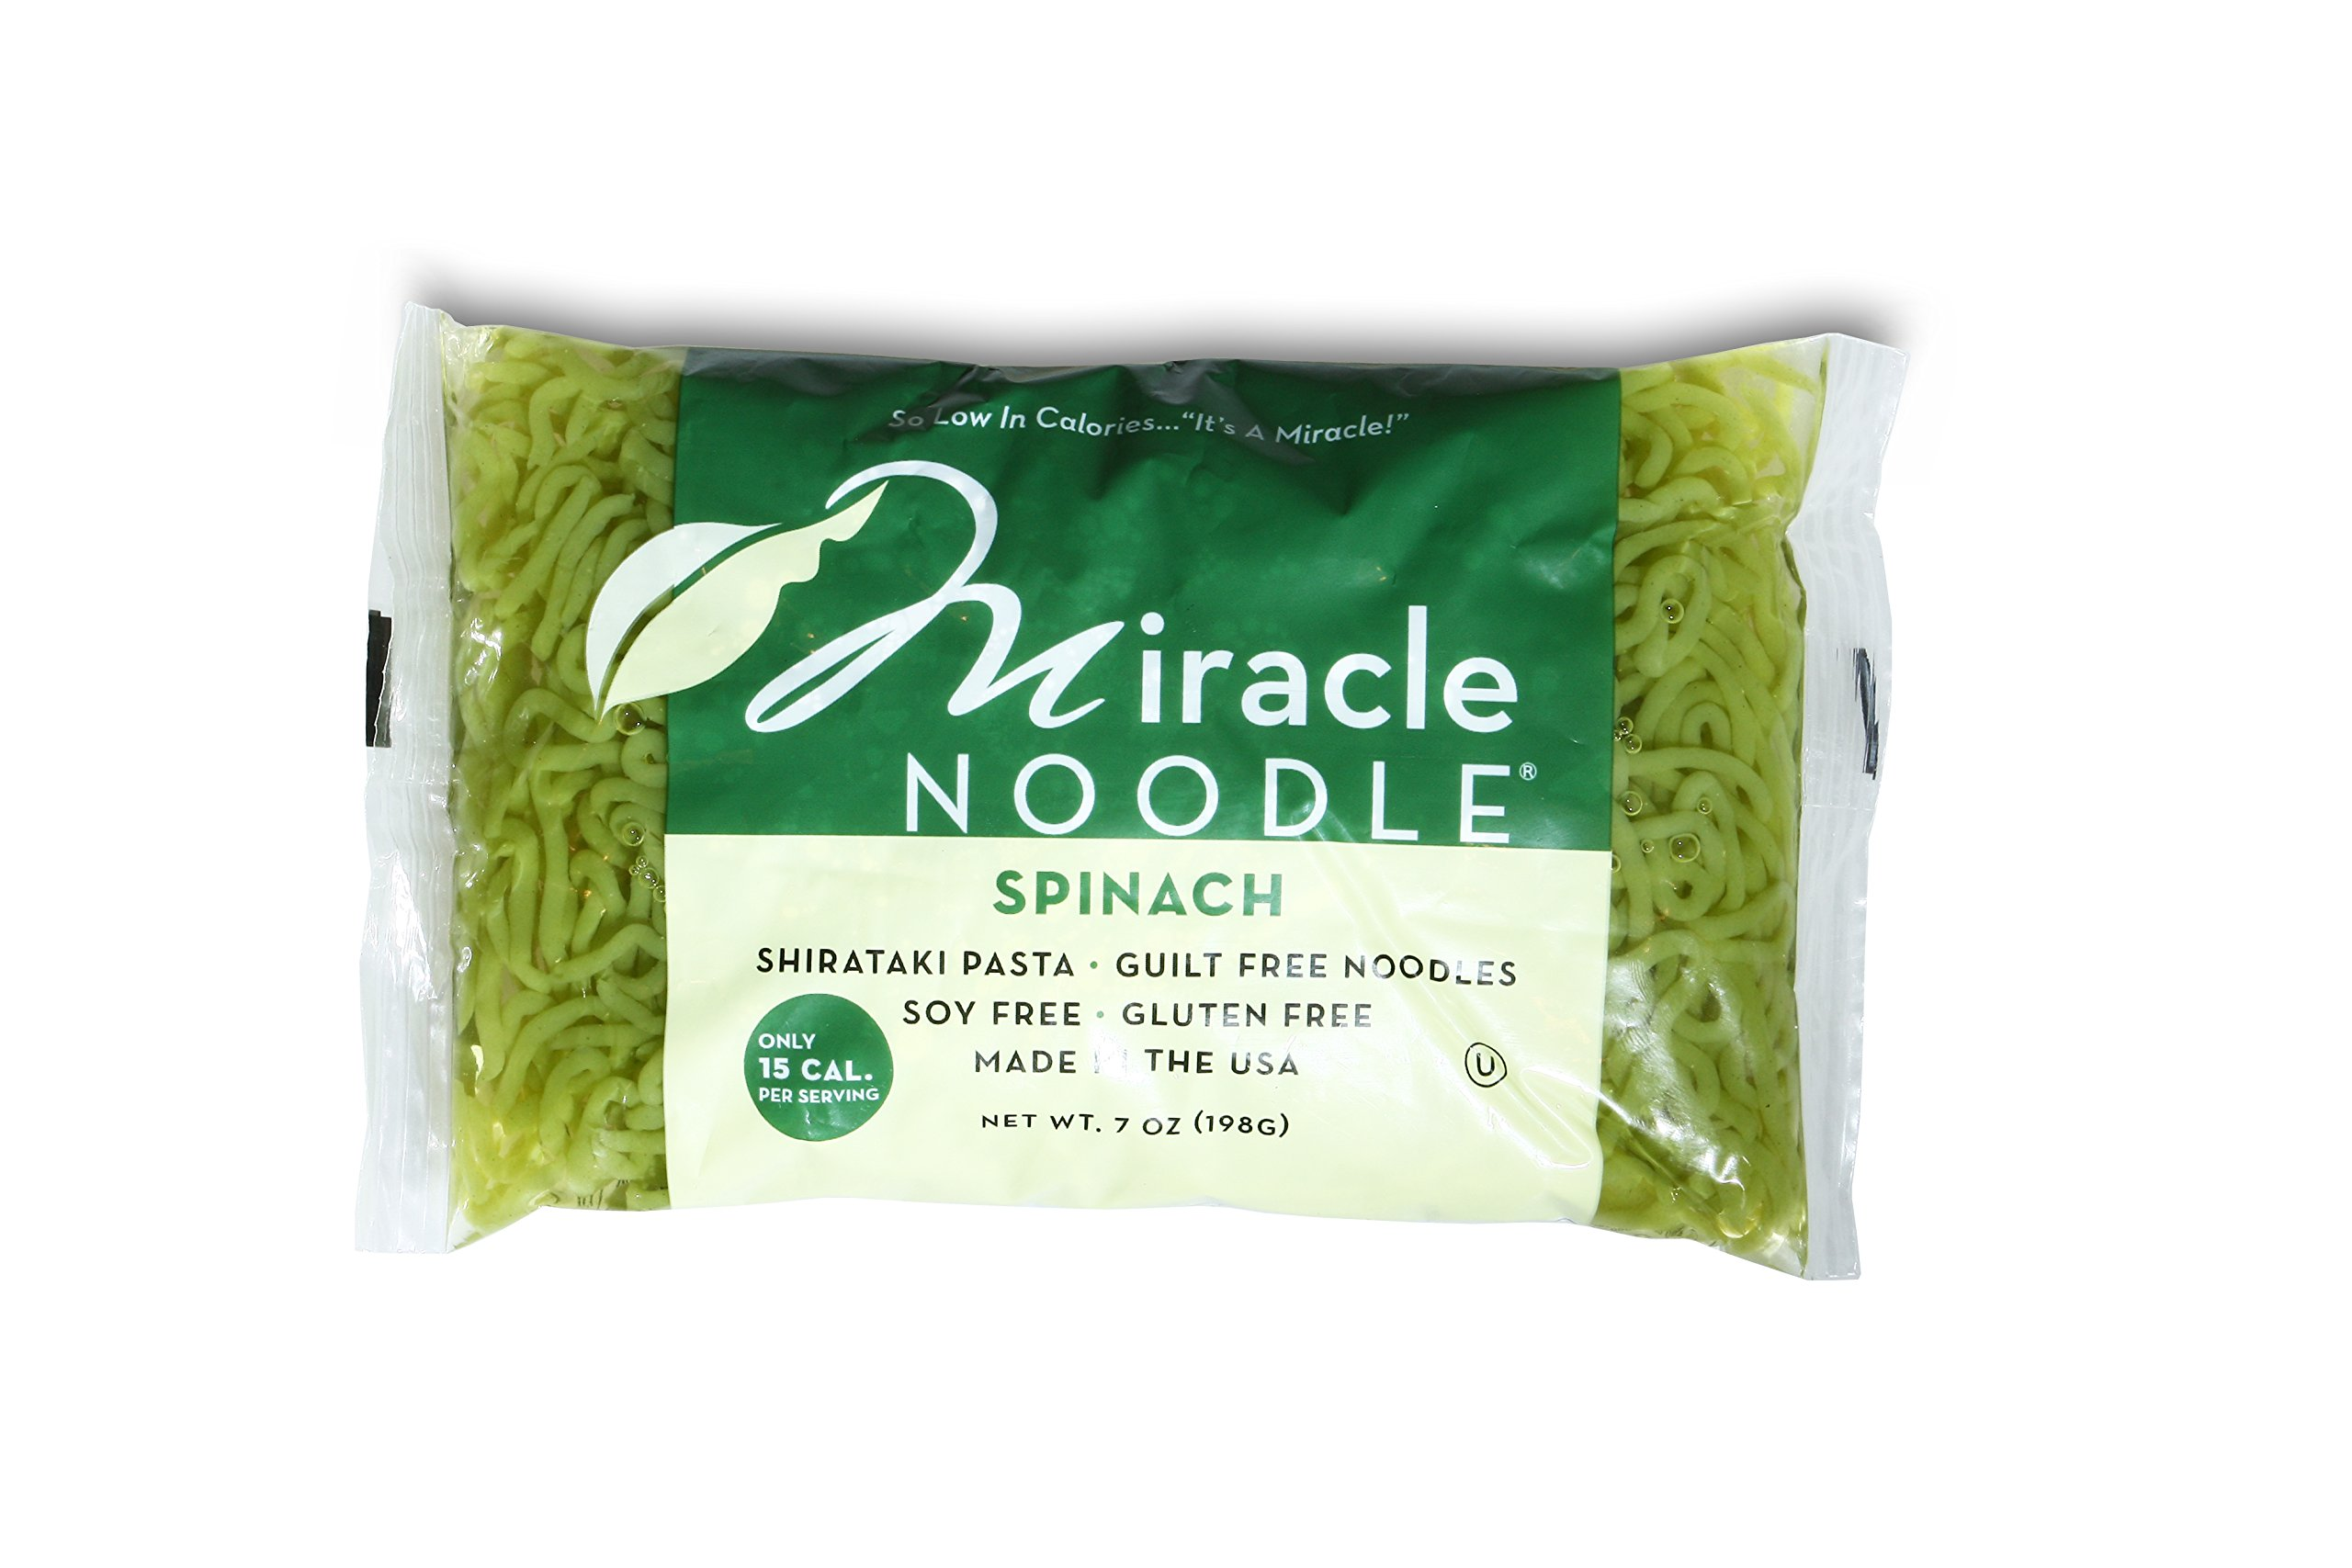 Miracle Noodle Spinach Shirataki Noodles, 7 oz (Pack of 6), Angel Hair Pasta, Low Carbs, Low Calorie, Gluten Free, Soy Free, Keto Friendly by Miracle Noodle